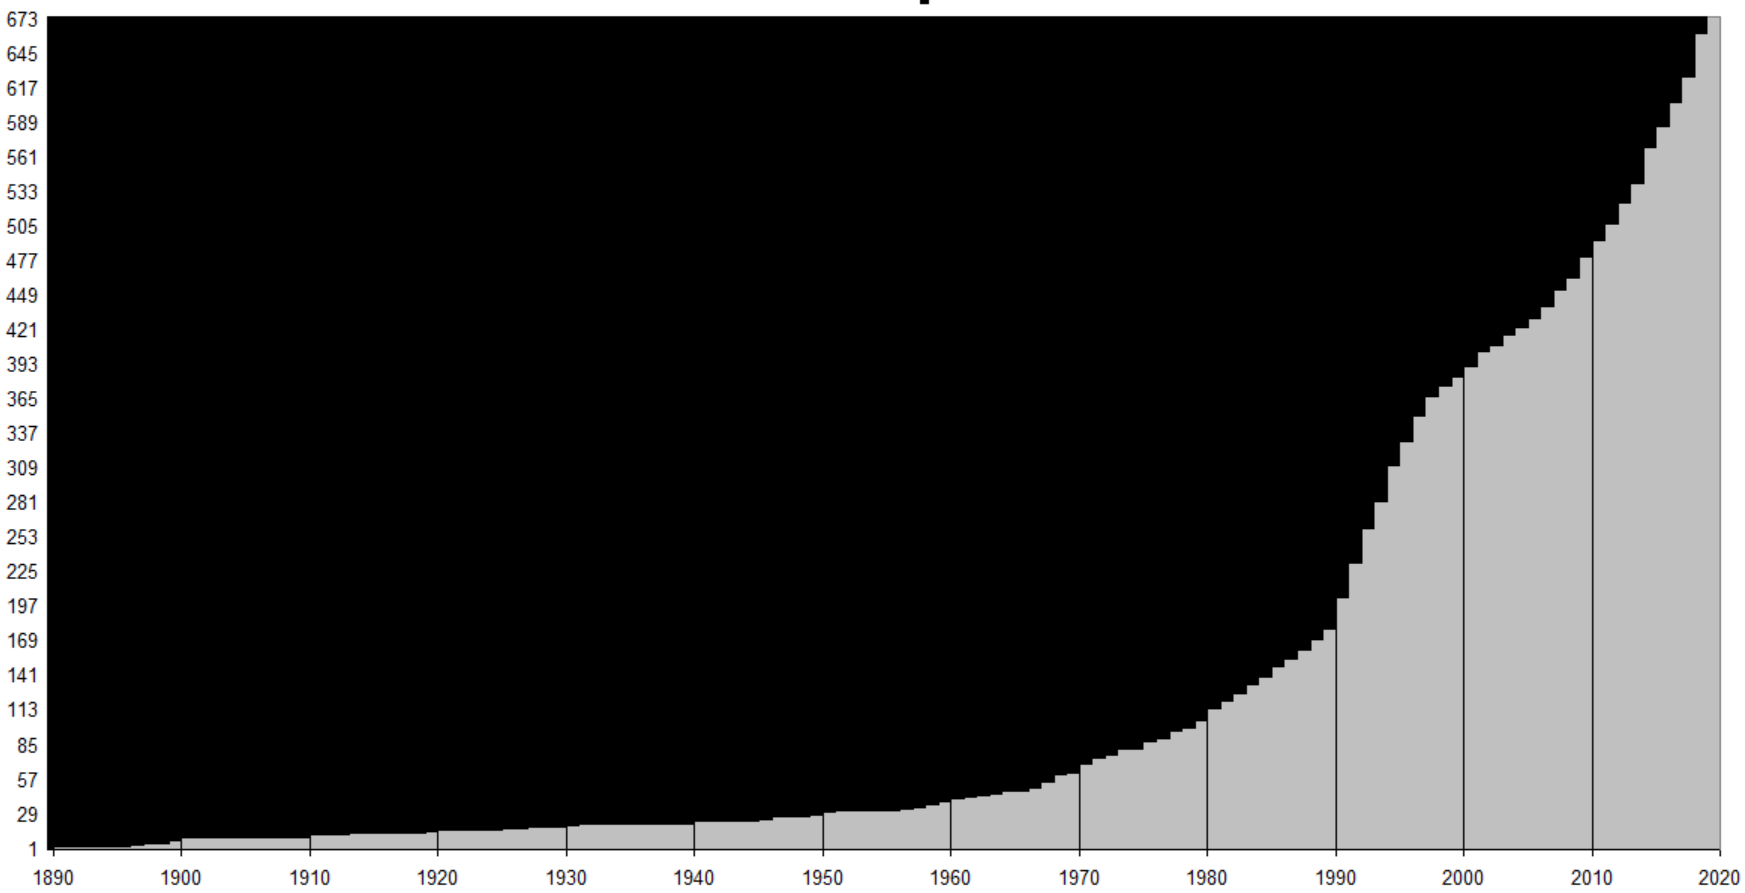 A graph showing the years the game references come from. The number for each year shows the cumulative total up to that year.